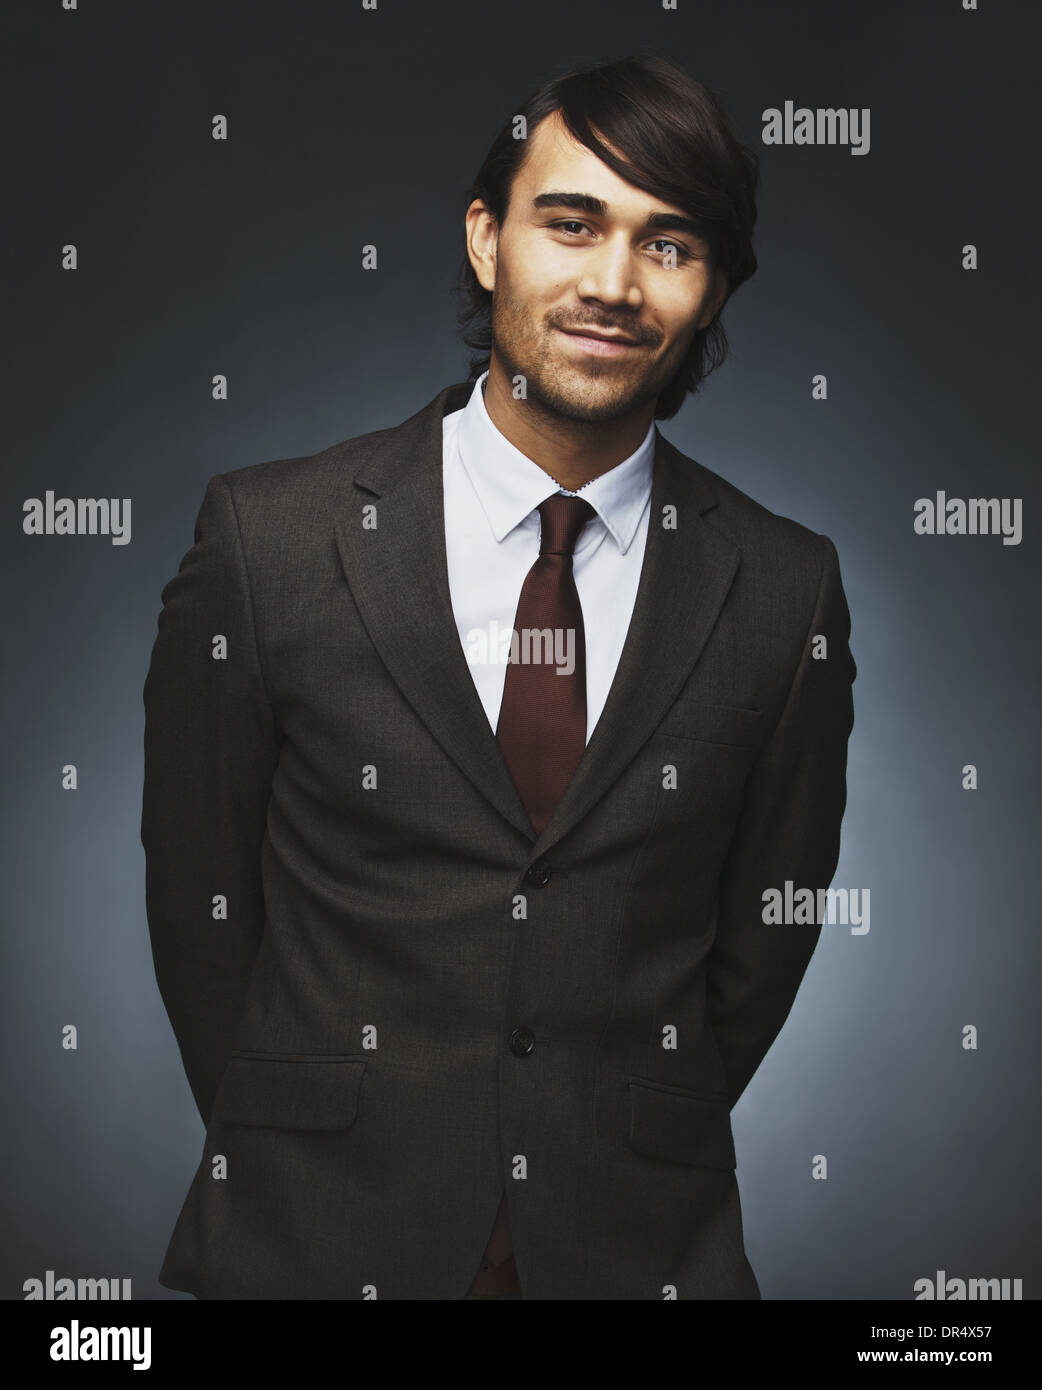 Portrait of charming young businessman looking at camera smiling. Well dressed asian male model posing against black background - Stock Image